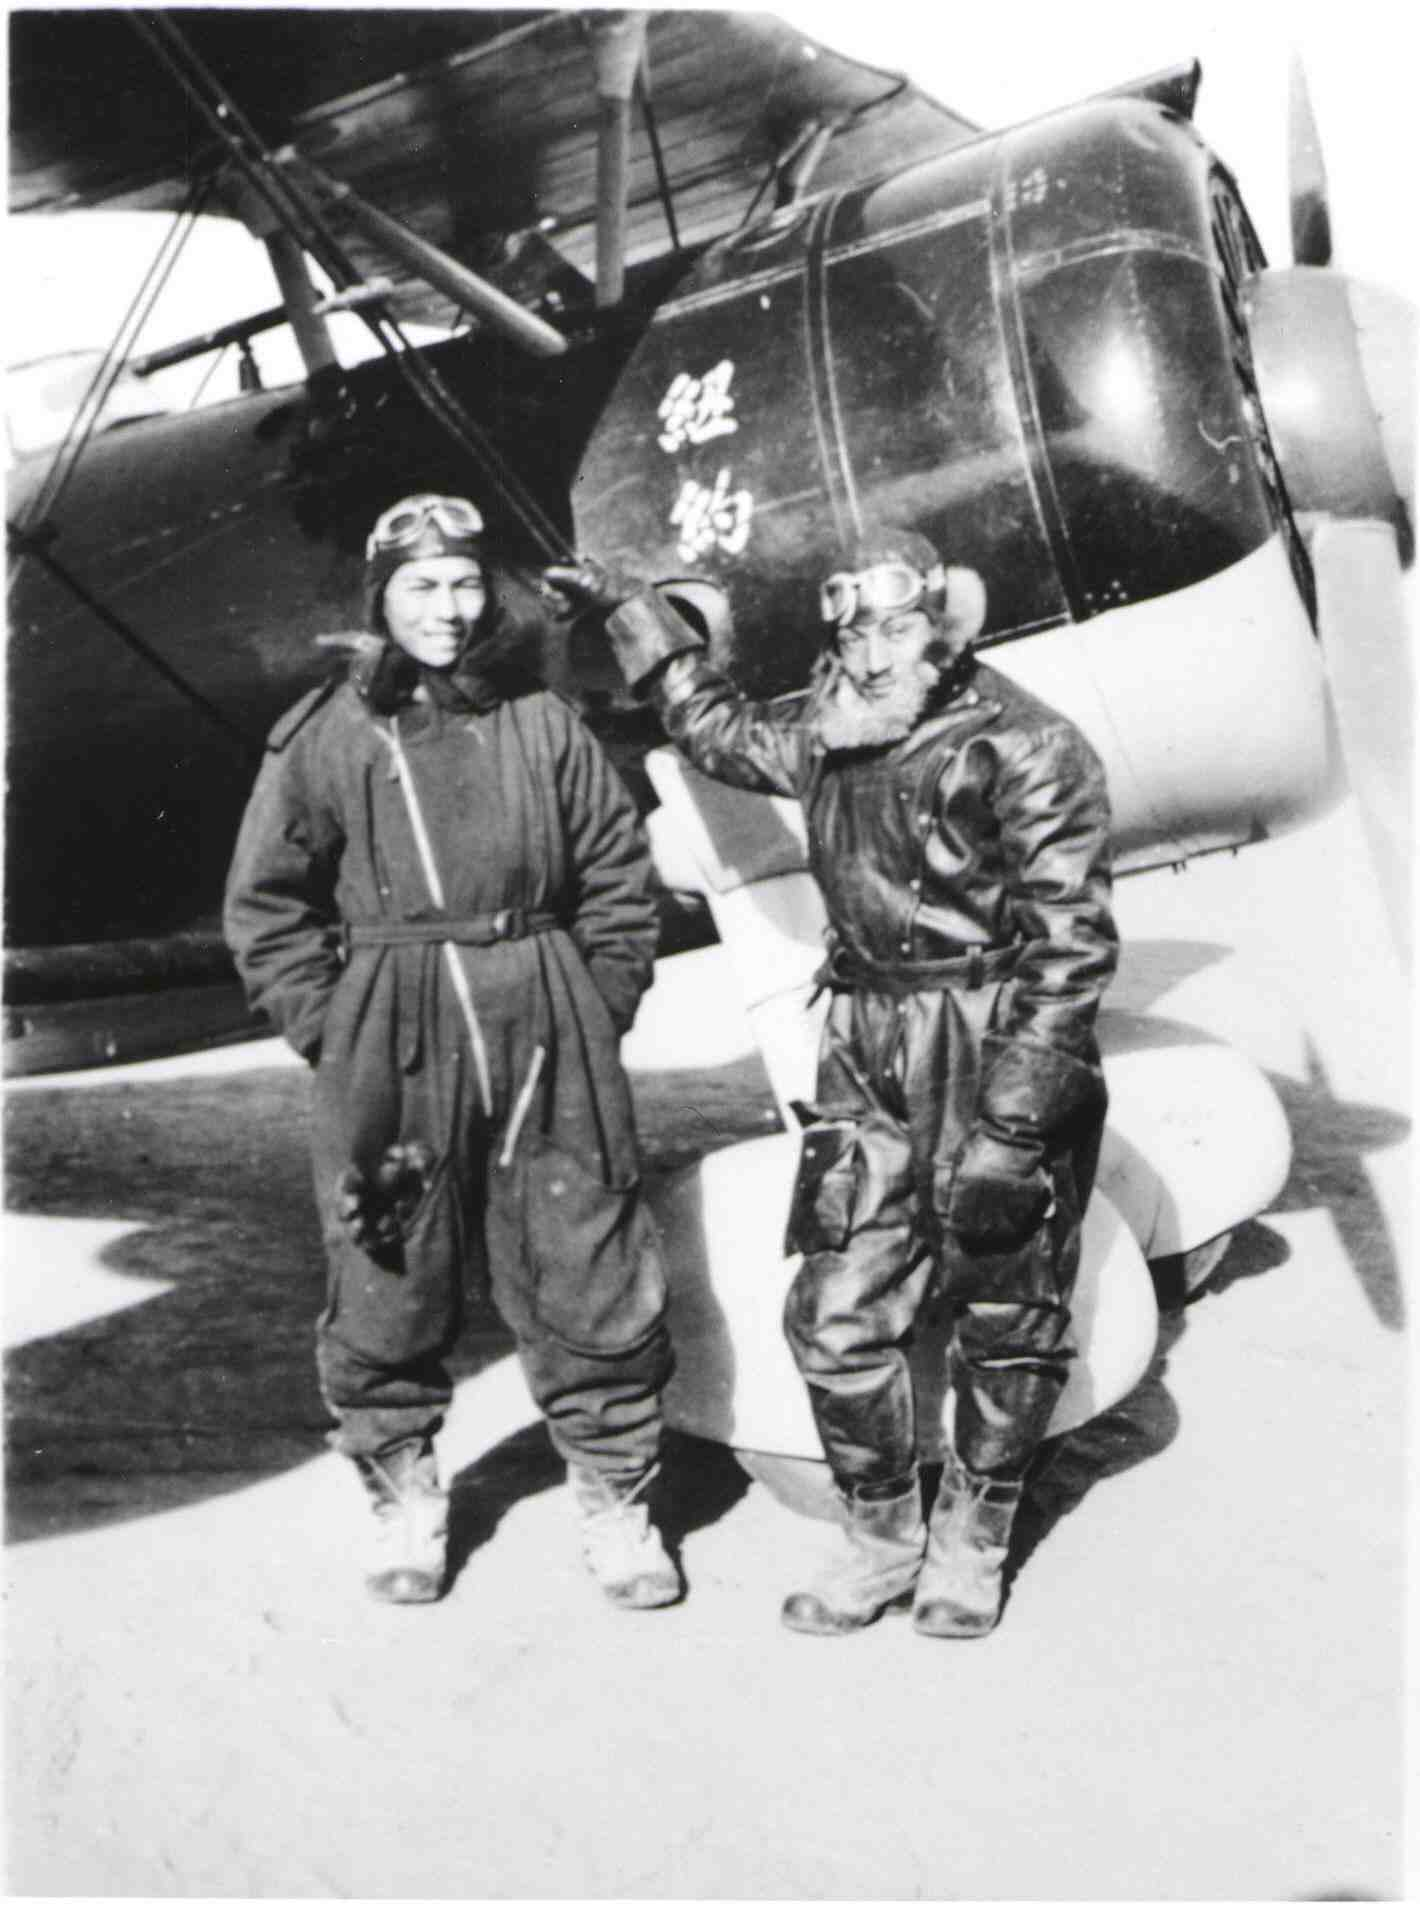 World War 2 fighter pilot Arthur Chin standing next to a Russian-built Polikarpov I-152 biplane fighter.